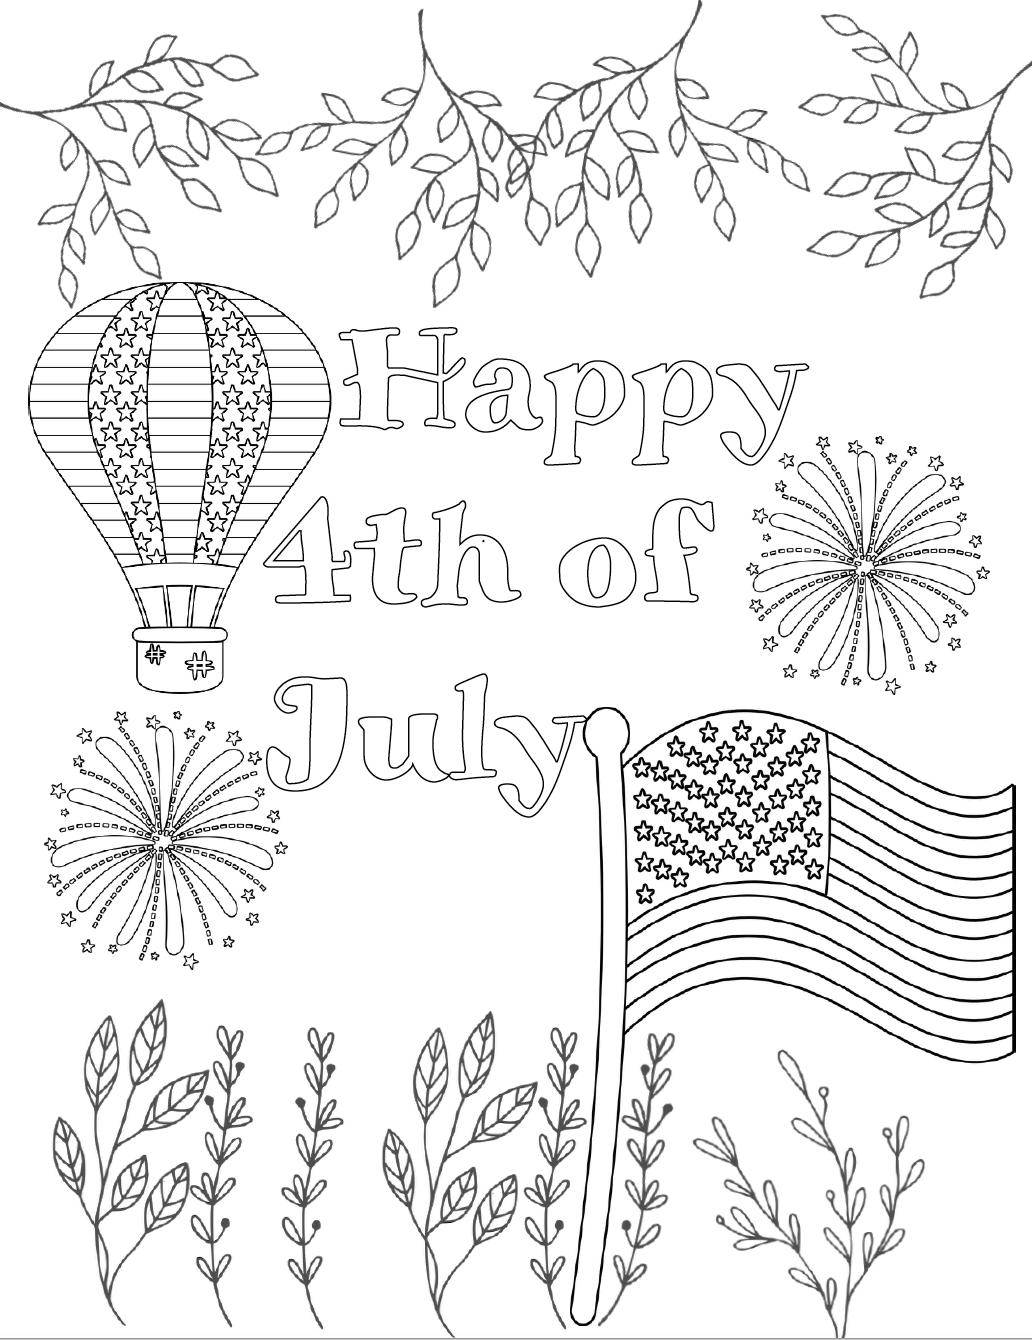 4th of july coloring pages 4th of july coloring pages to print at home kids activities coloring of pages 4th july